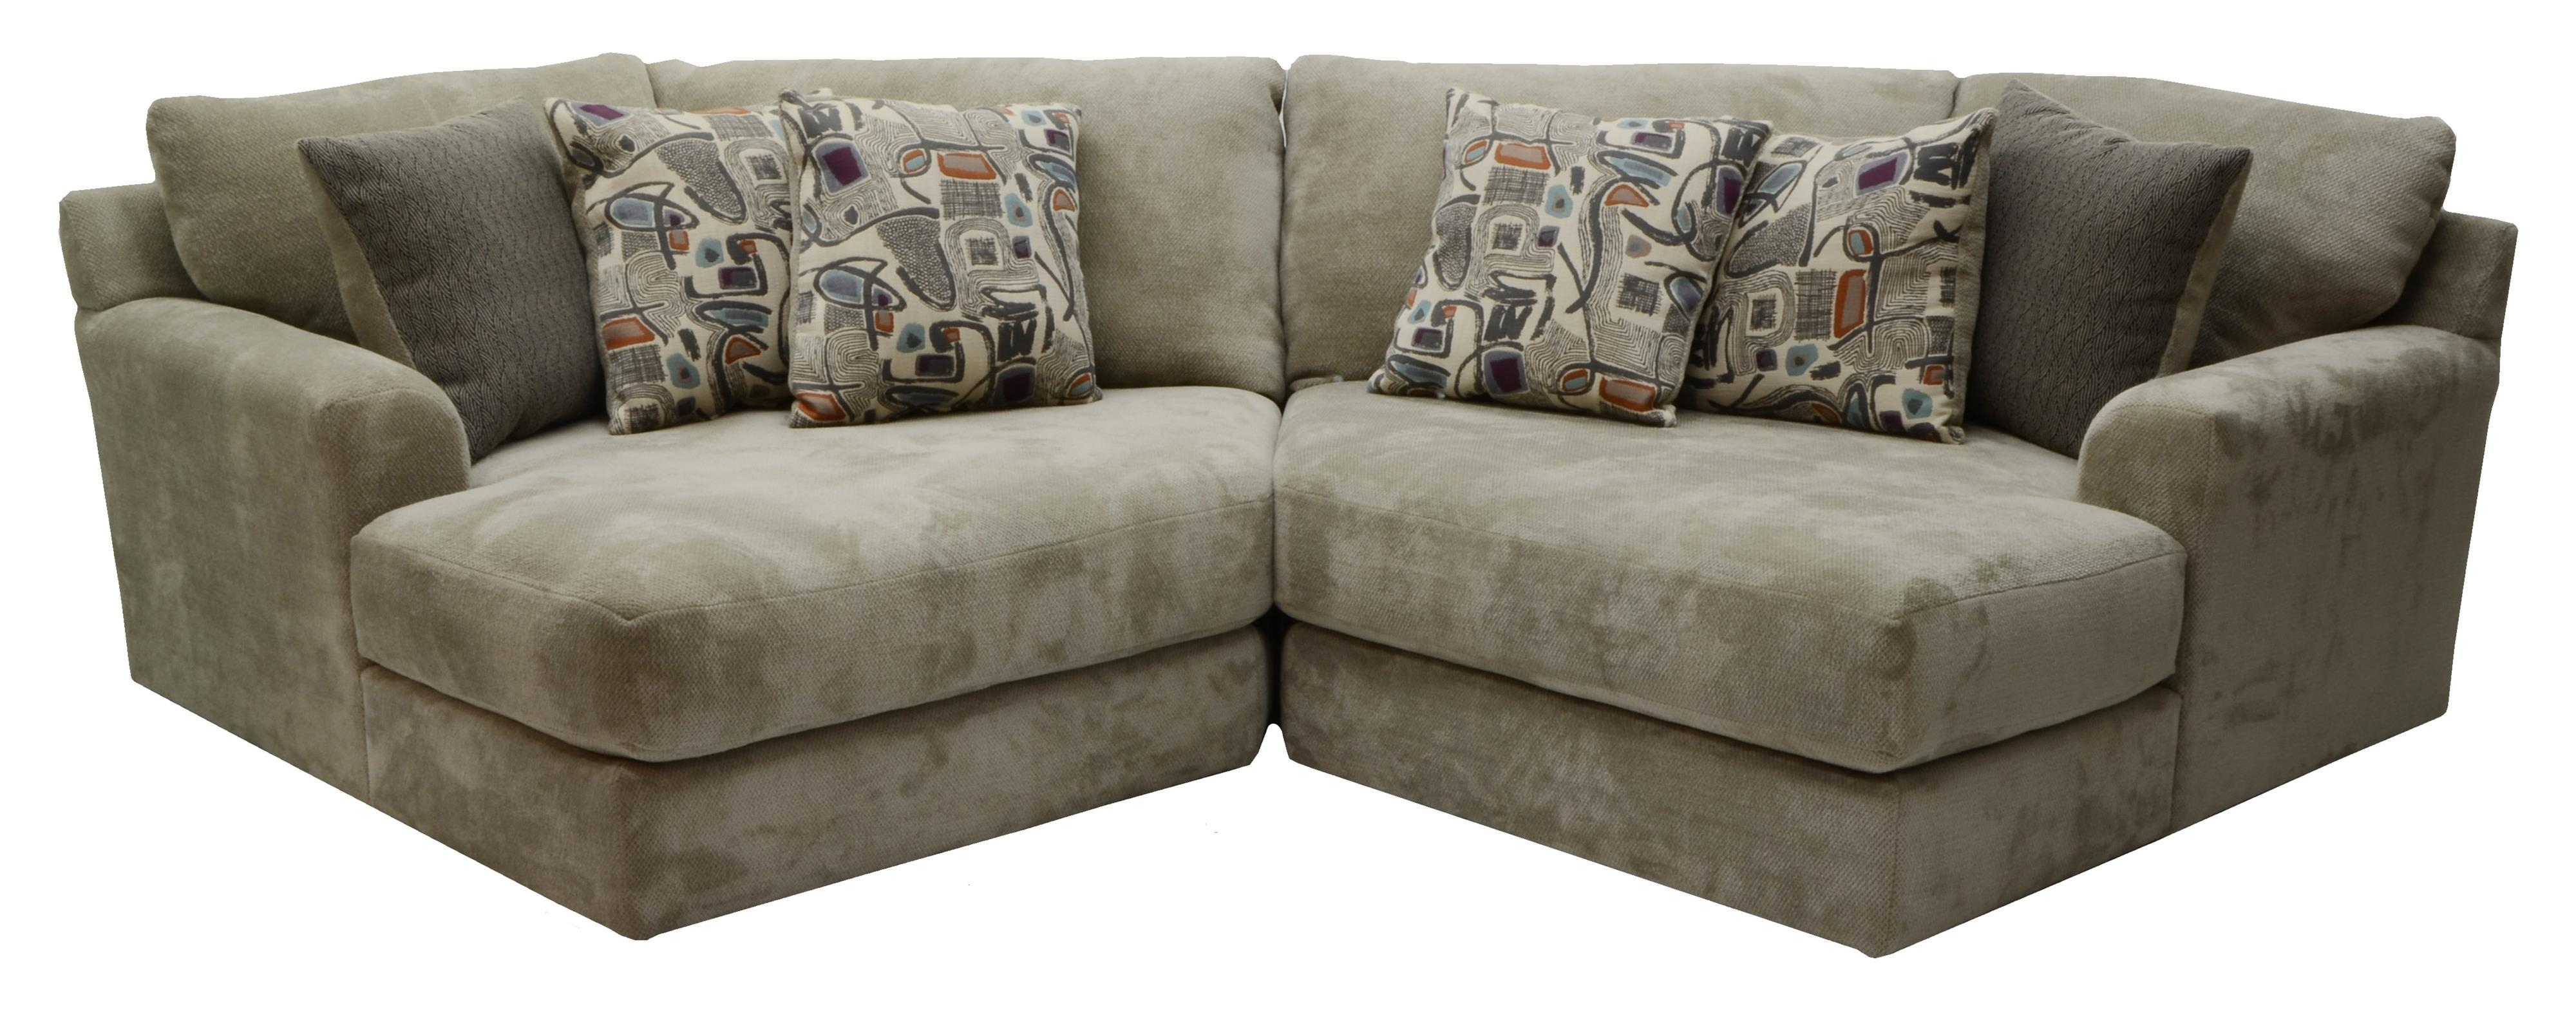 Two Seat Sectionaljackson Furniture | Wolf And Gardiner Wolf Intended For 2 Seat Sectional Sofas (Image 15 of 15)